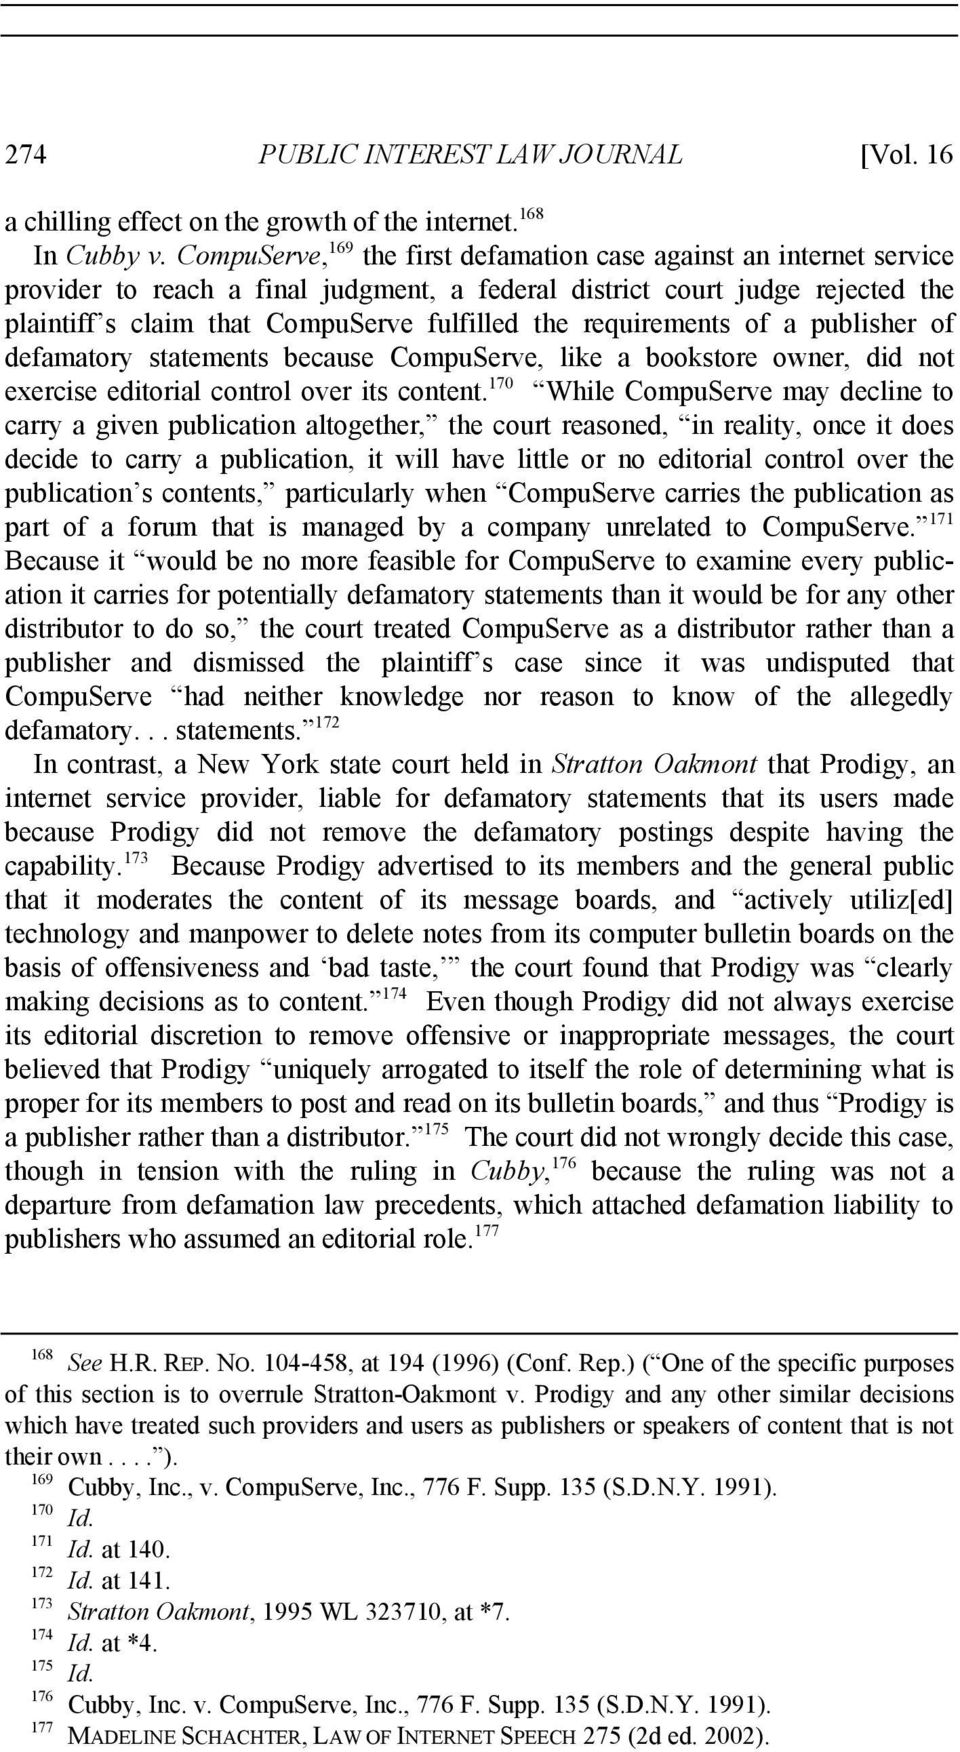 requirements of a publisher of defamatory statements because CompuServe, like a bookstore owner, did not exercise editorial control over its content.